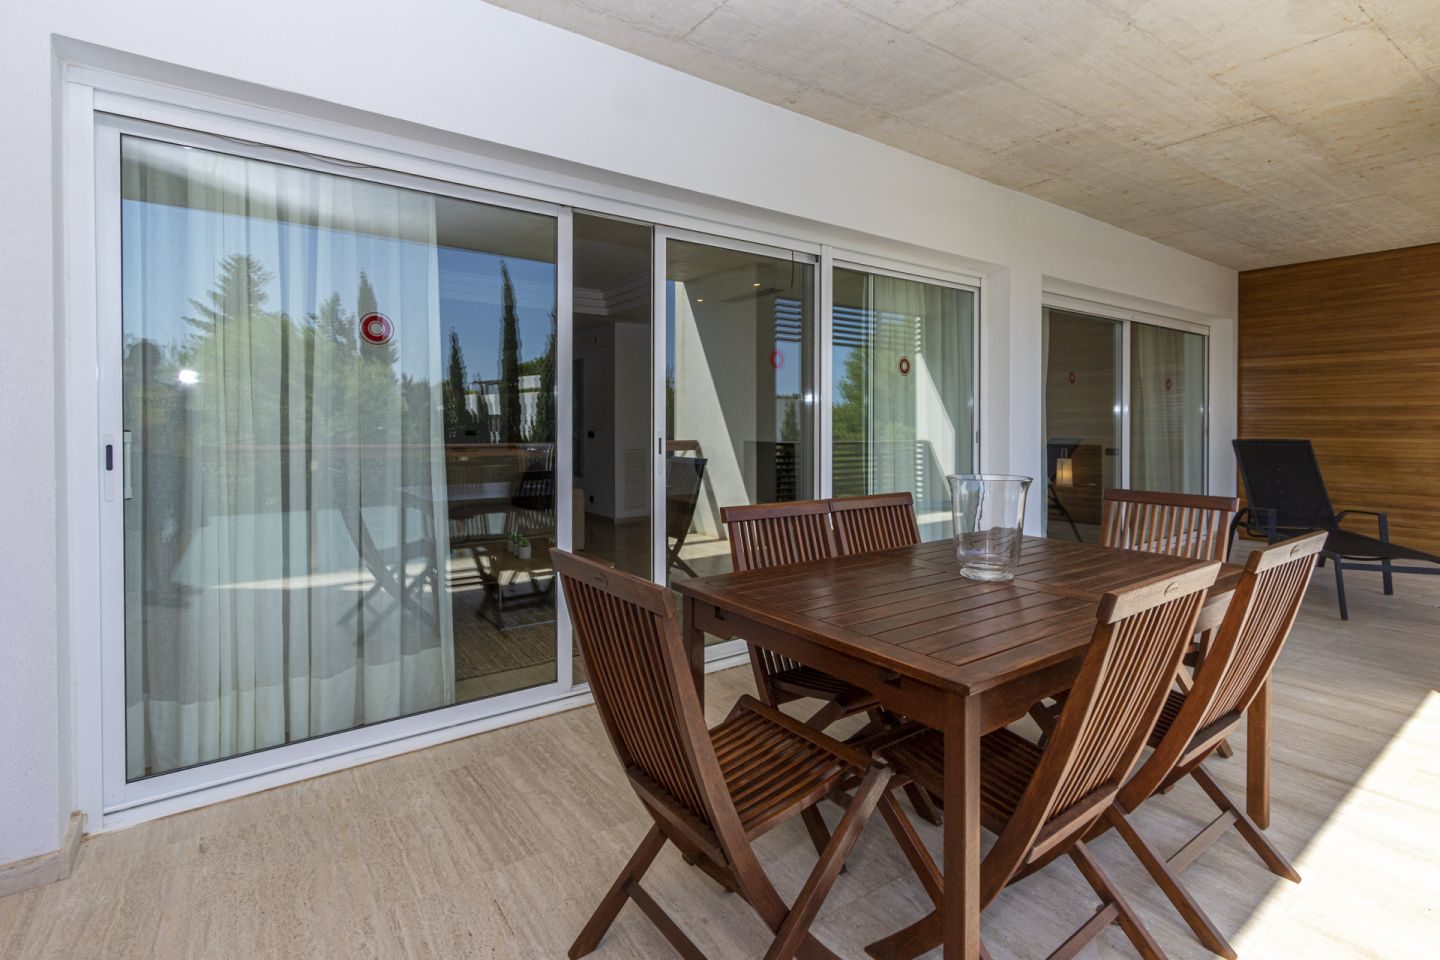 3 Bed Penthouse for sale in PUERTO POLLENSA 14